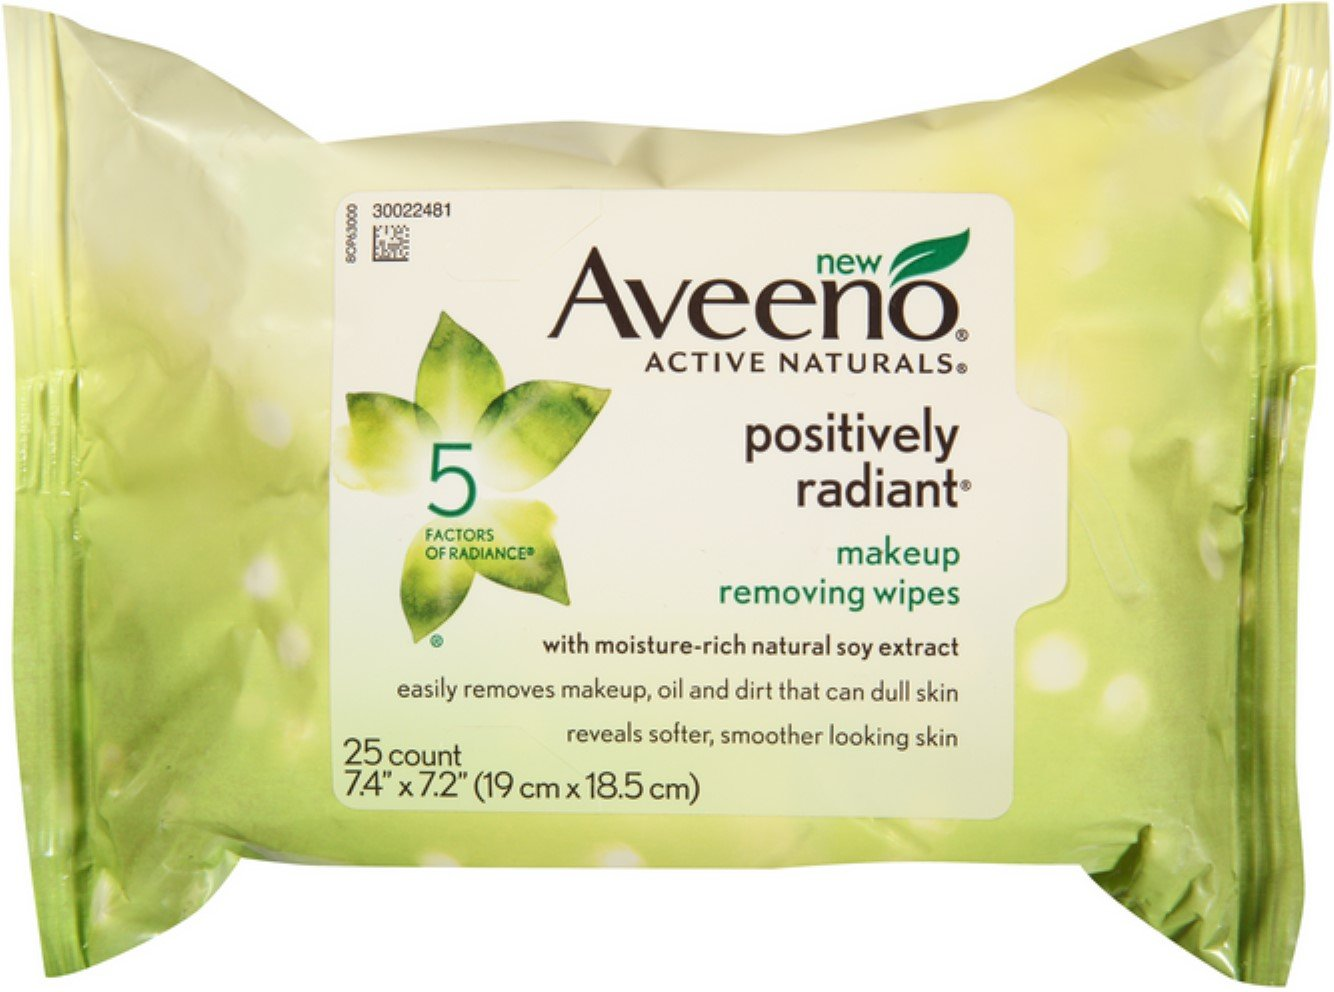 AVEENO Active Naturals Positively Radiant Makeup Removing Wipes, 25 ea (Pack of 6) by Aveeno